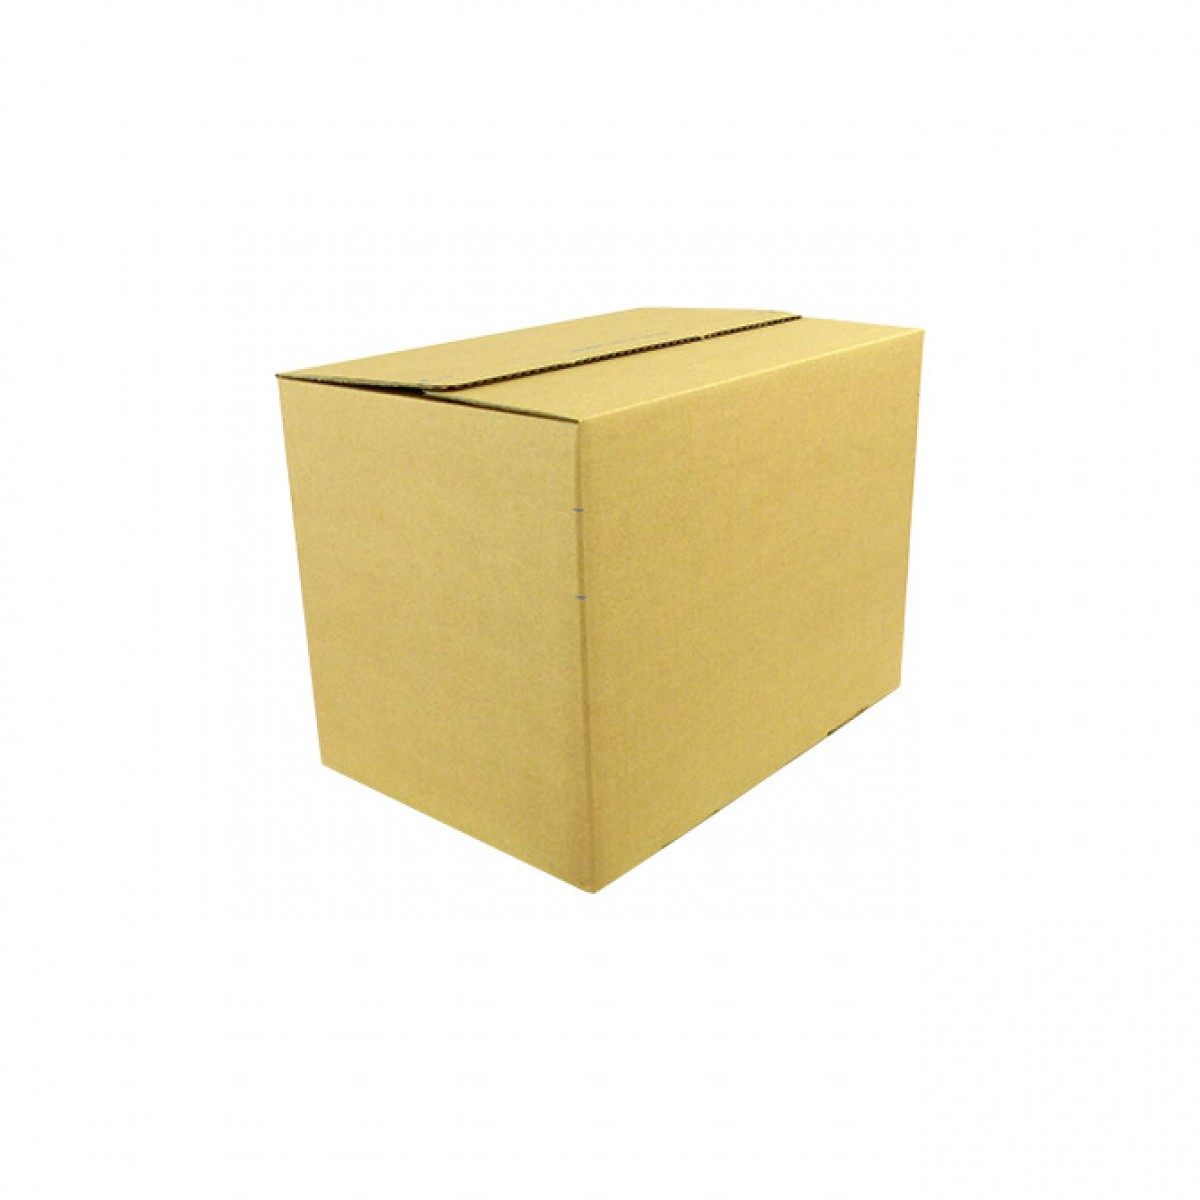 Easybox 305 x 215 x 220 mm